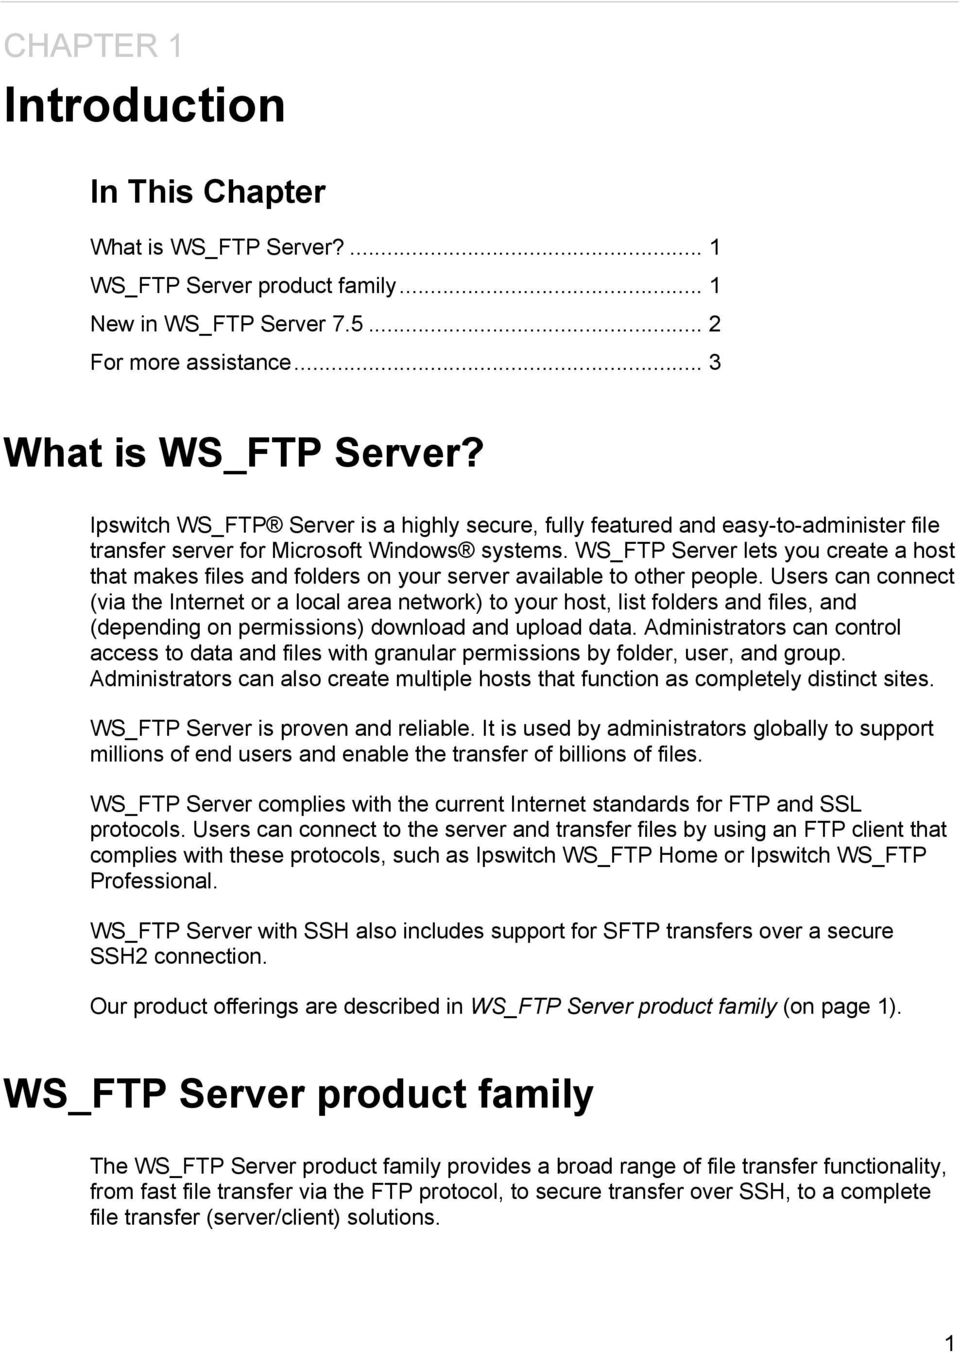 WS_FTP Server lets you create a host that makes files and folders on your server available to other people.